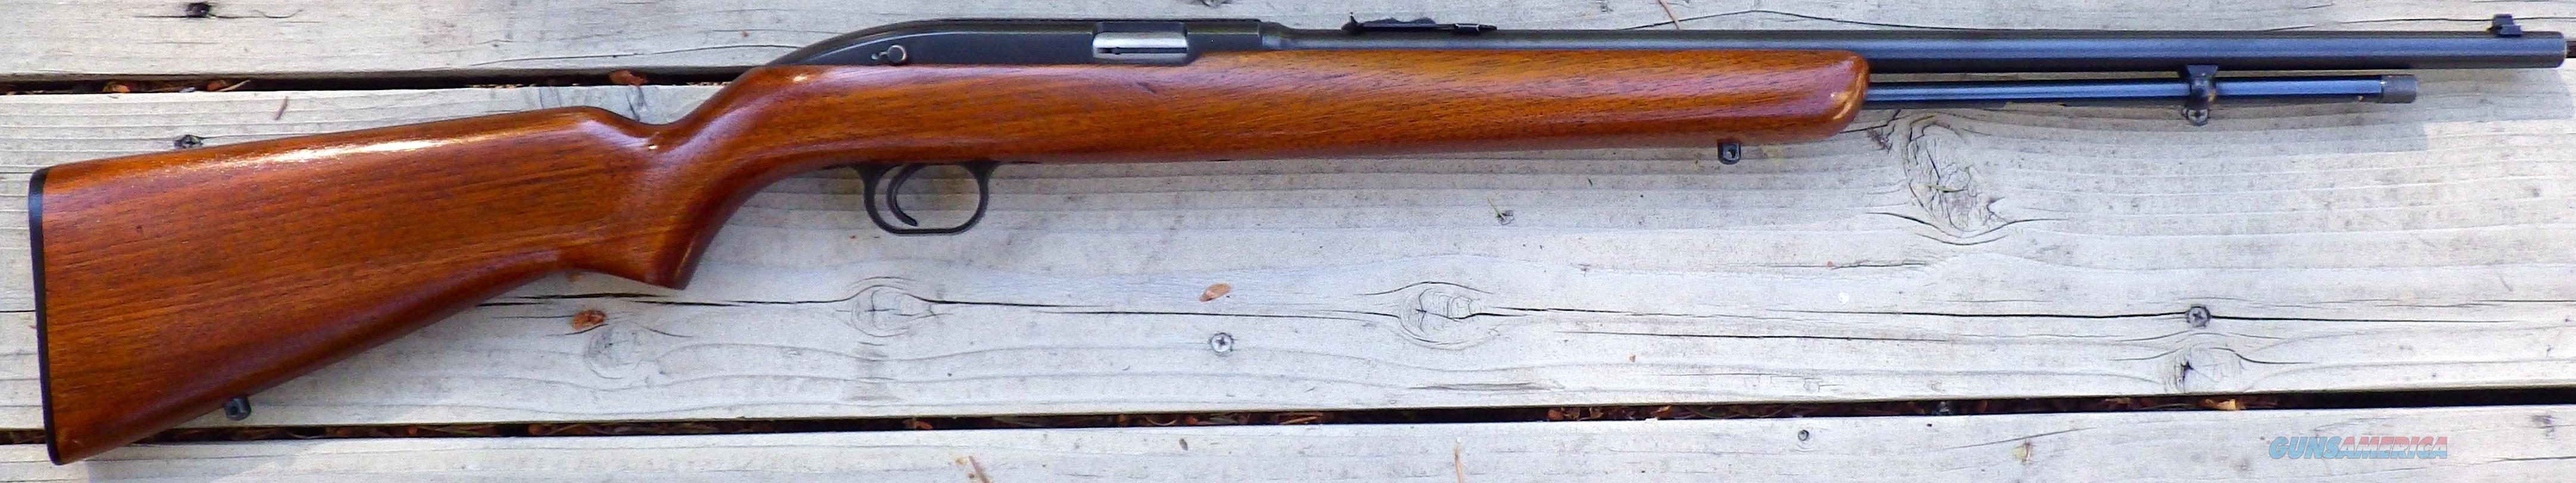 Winchester Model 77 .22 LR, tube feed  Guns > Rifles > Winchester Rifles - Modern Bolt/Auto/Single > Autoloaders